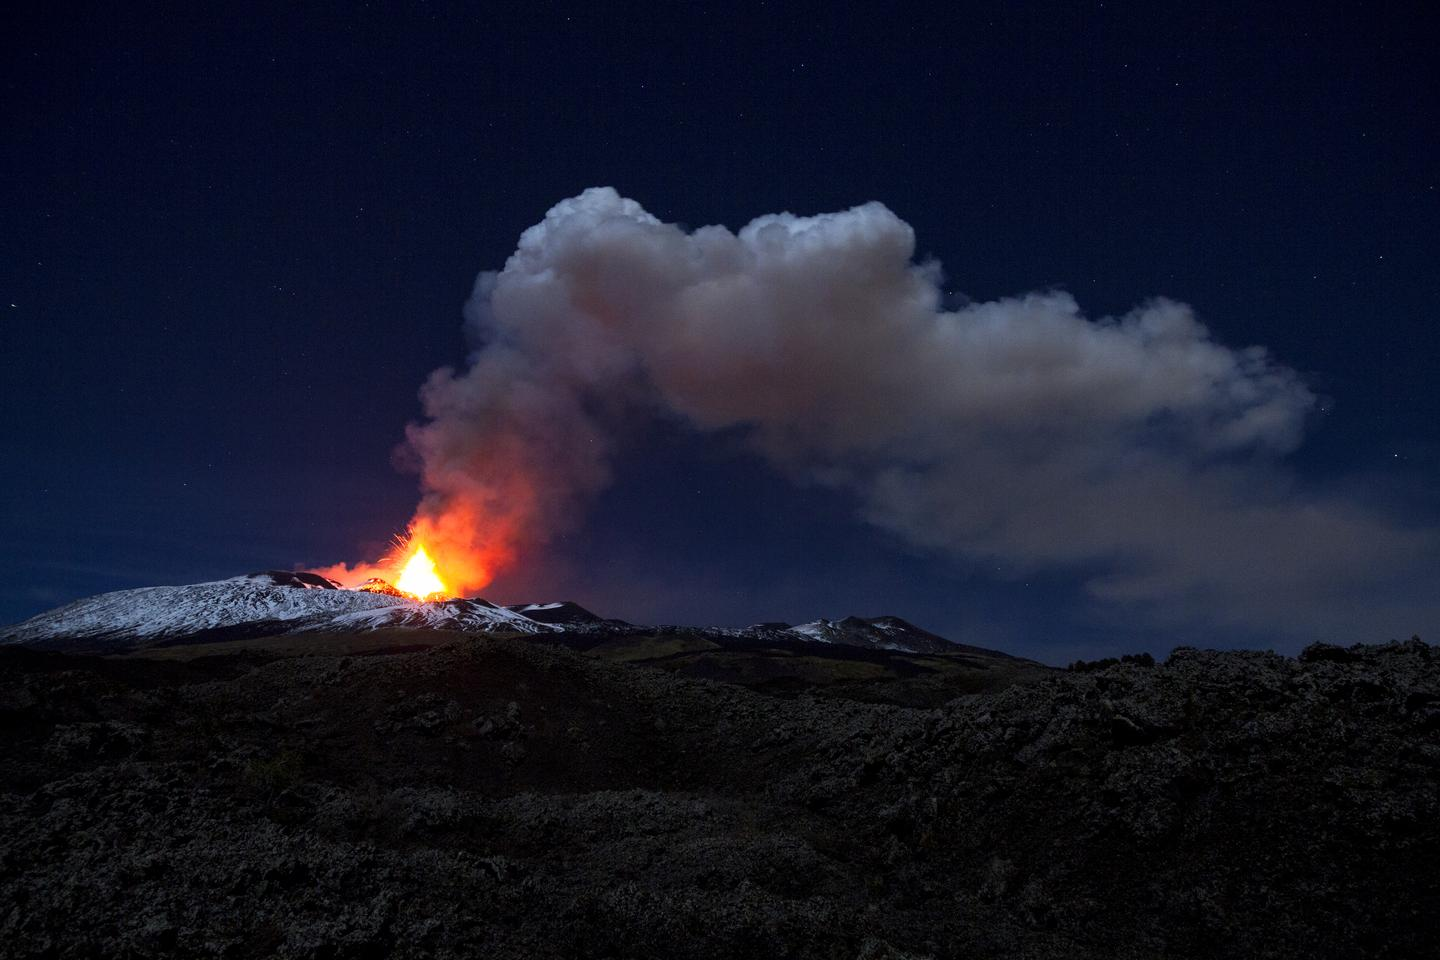 Mount Etna (pictured) is the most active volcano in Europe